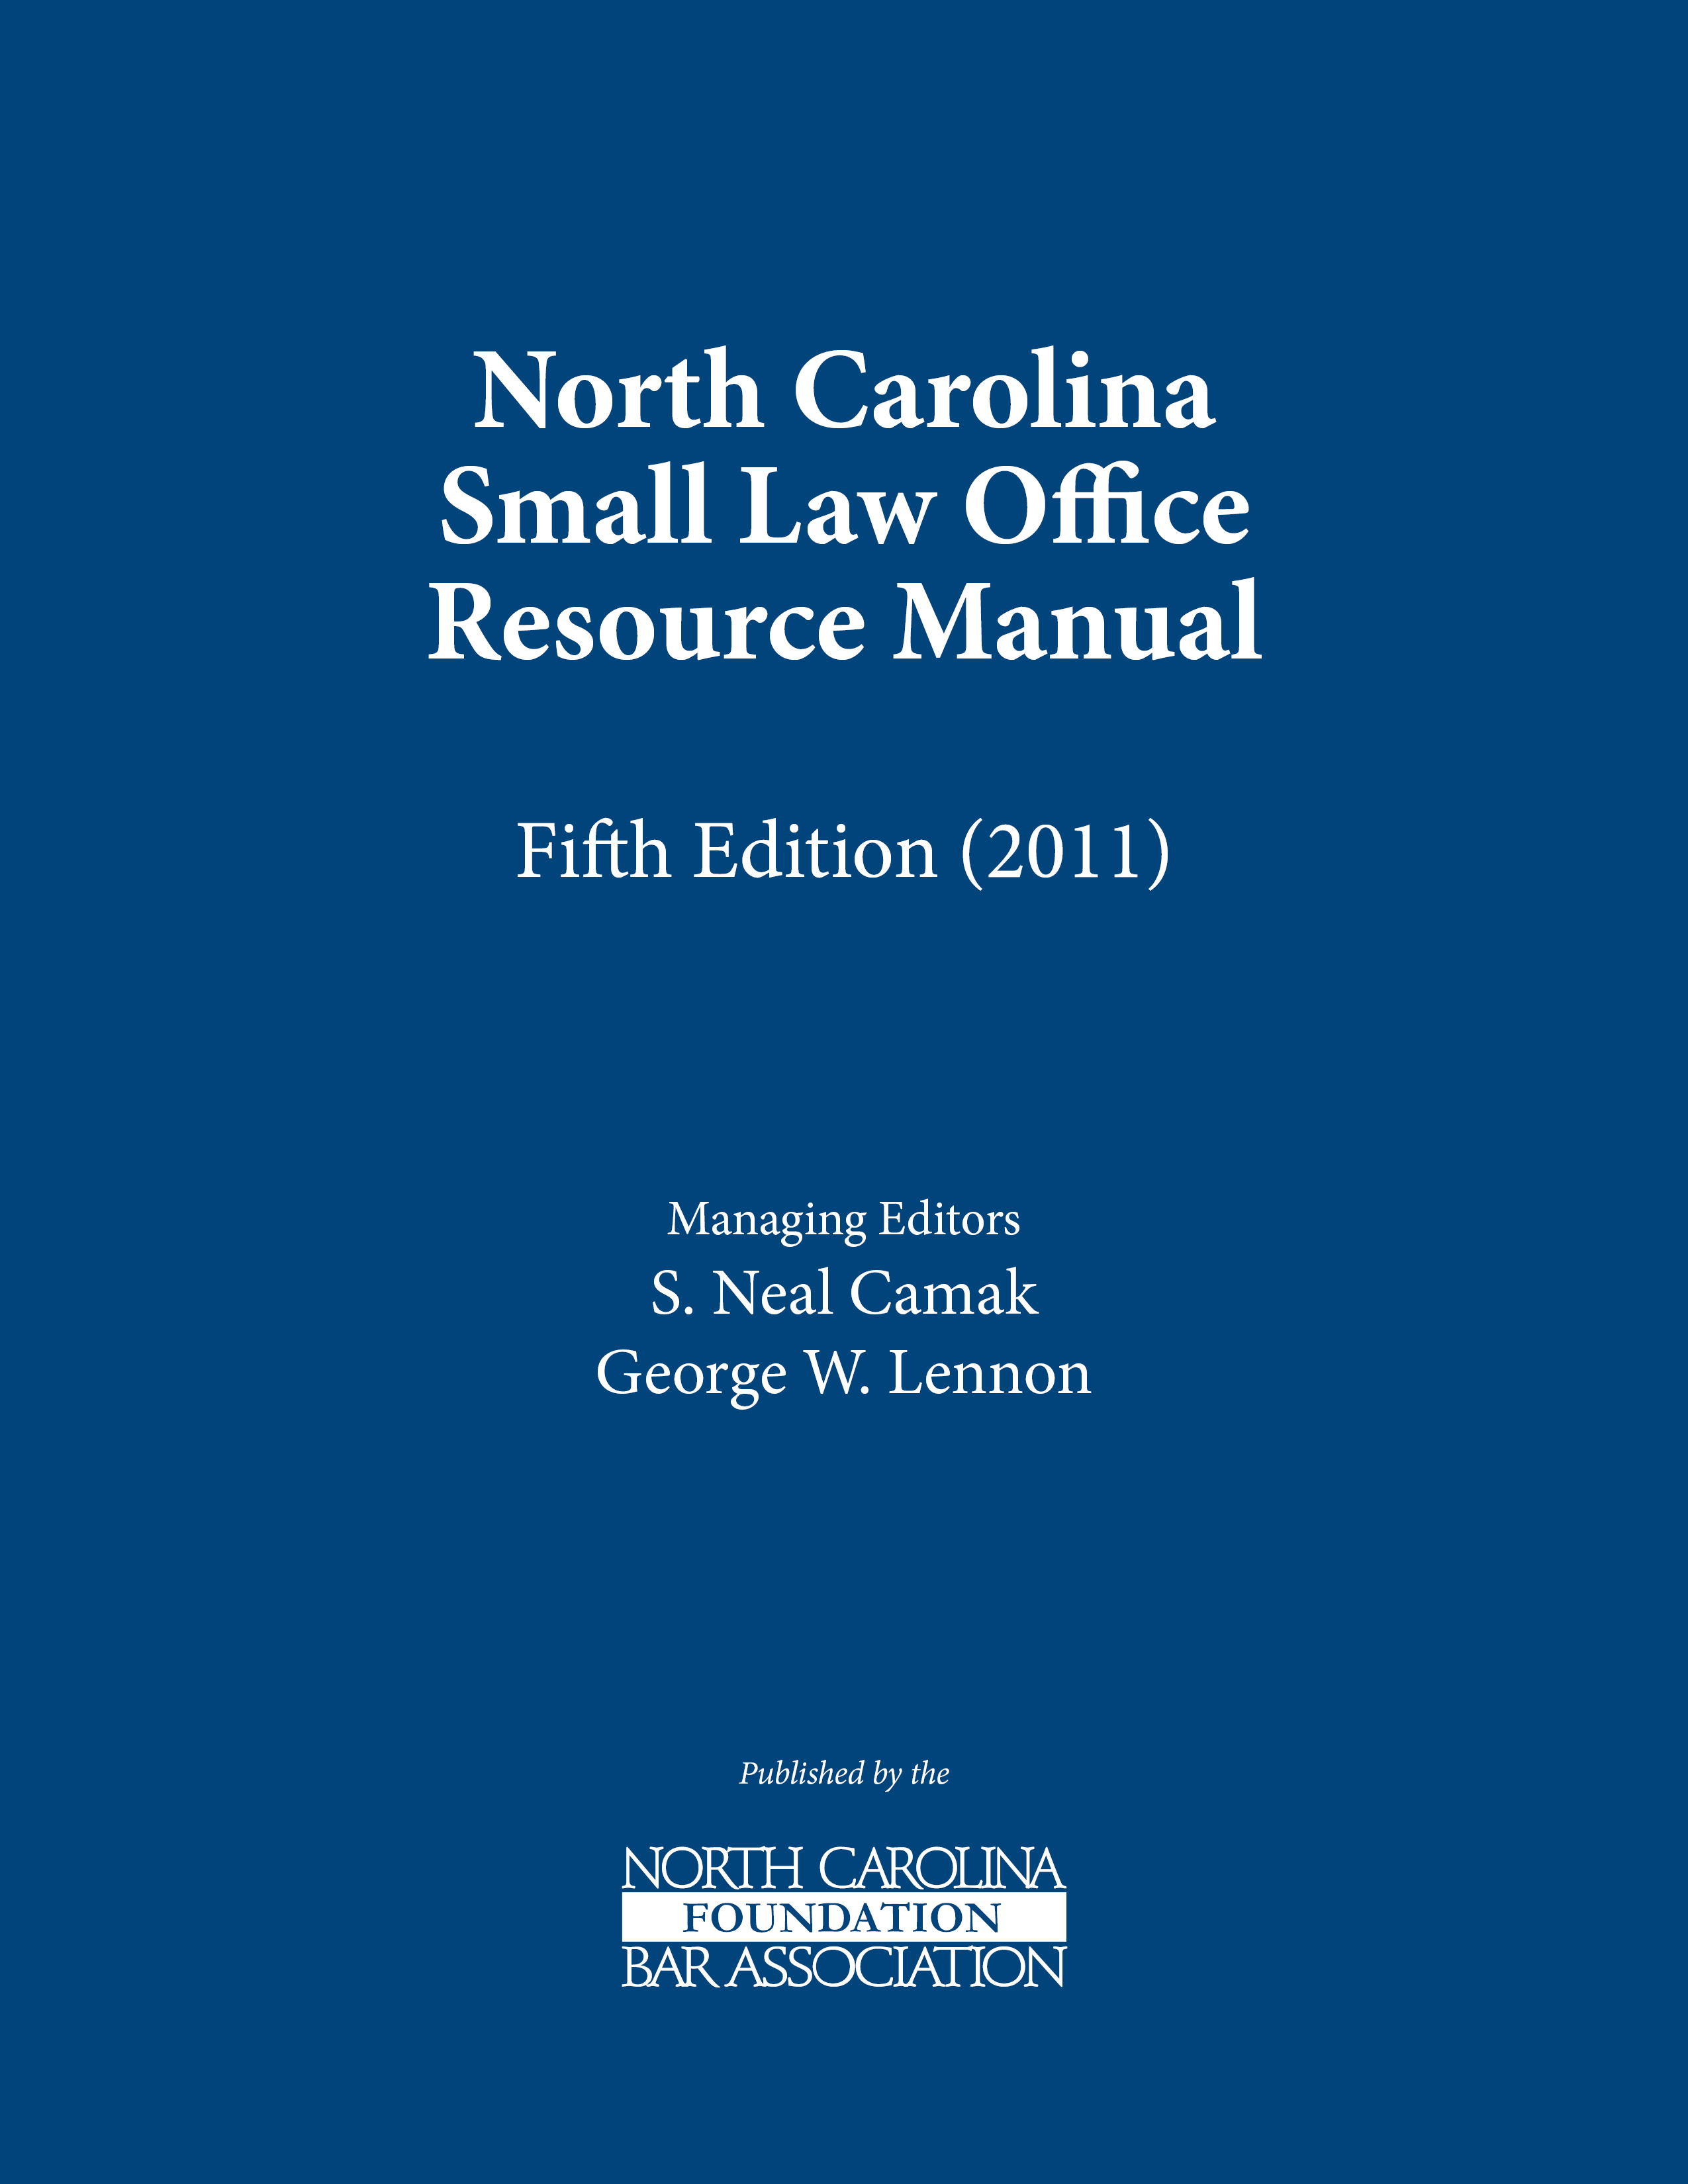 north carolina small law office resource manual fastcase rh fastcase com north carolina manual uniform traffic control north carolina manual uniform traffic control